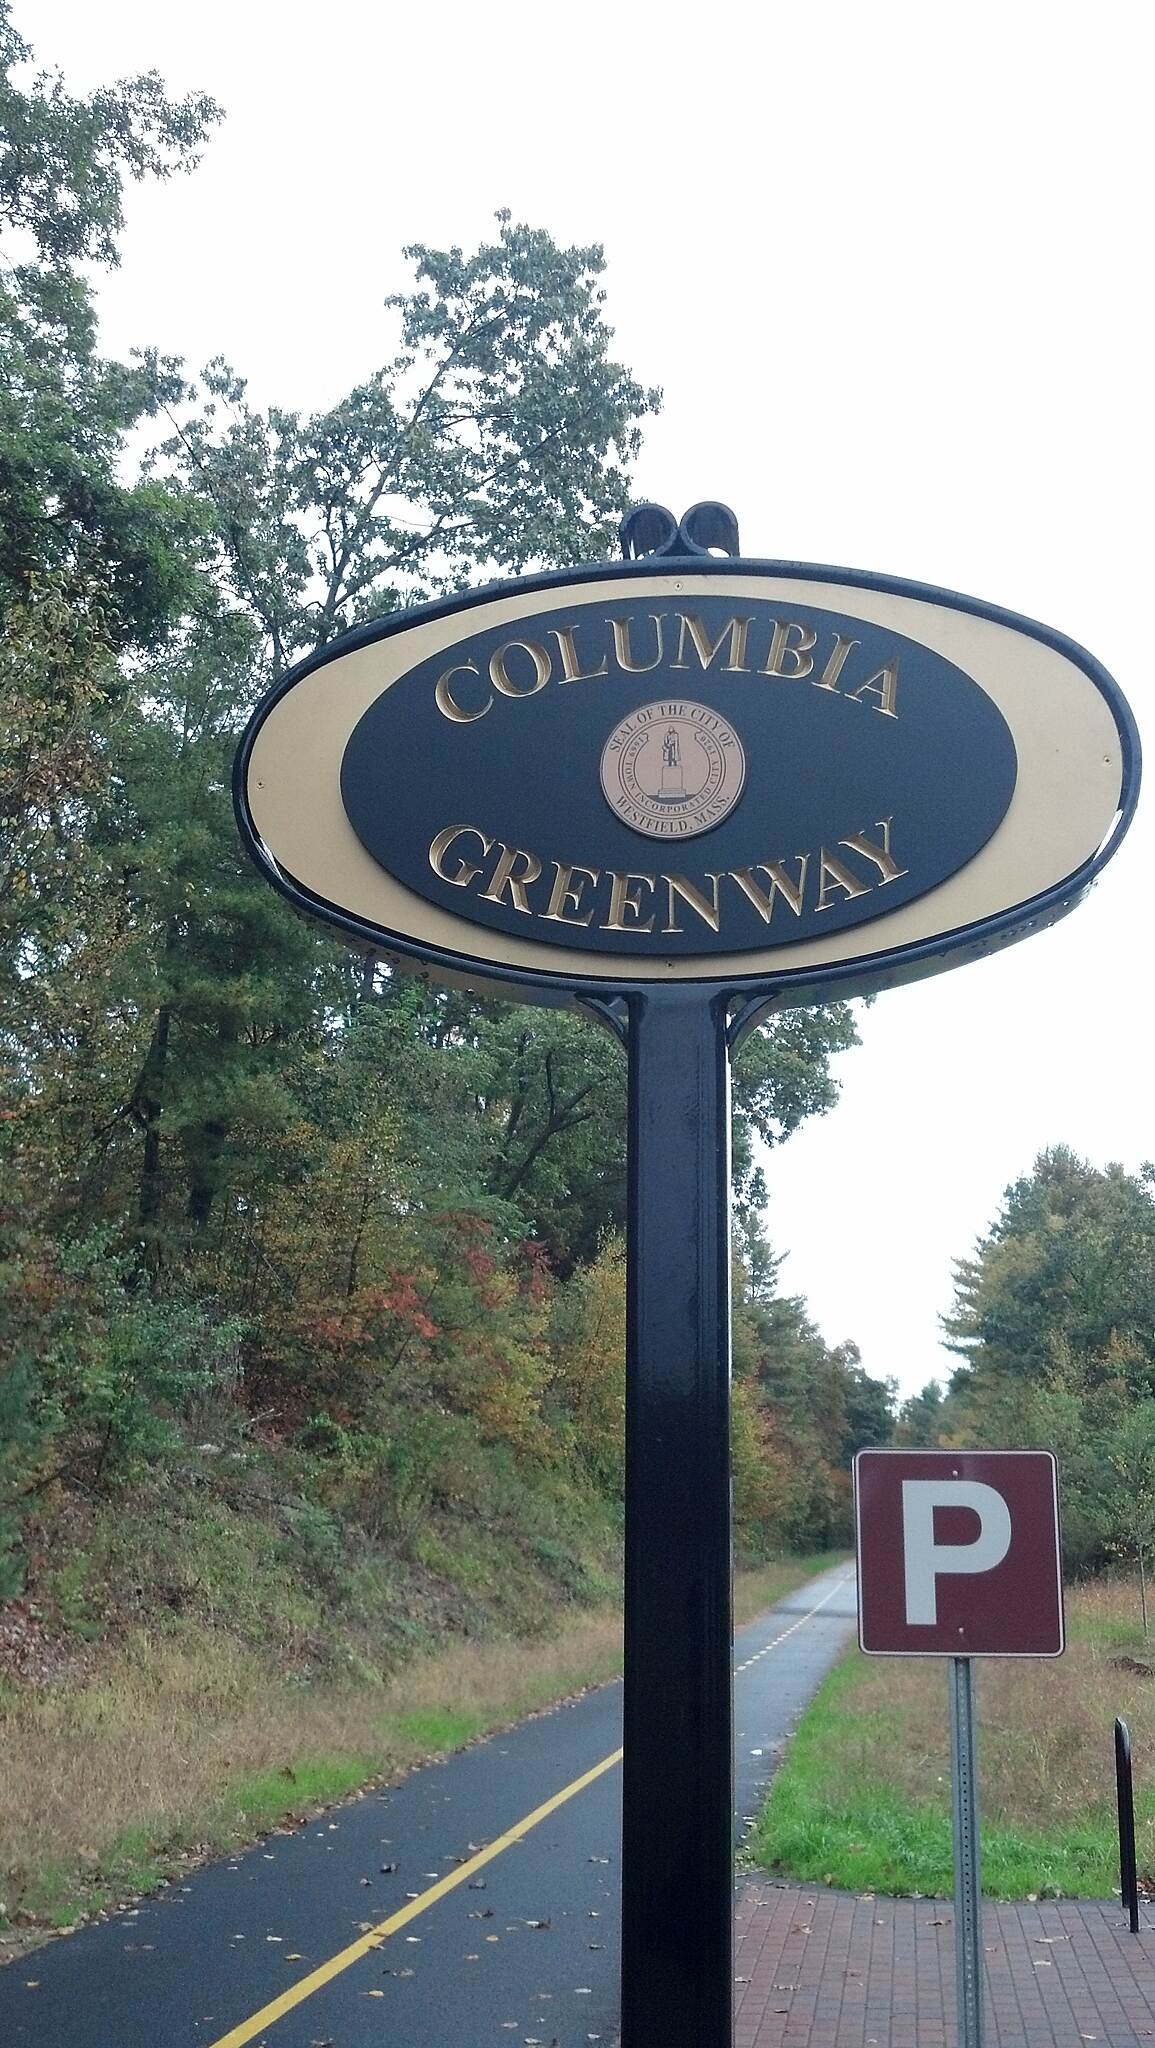 Columbia Greenway Rail Trail Columbia Greenway Sign Trail Sign at the trailhead on Shaker Rd. Westfield